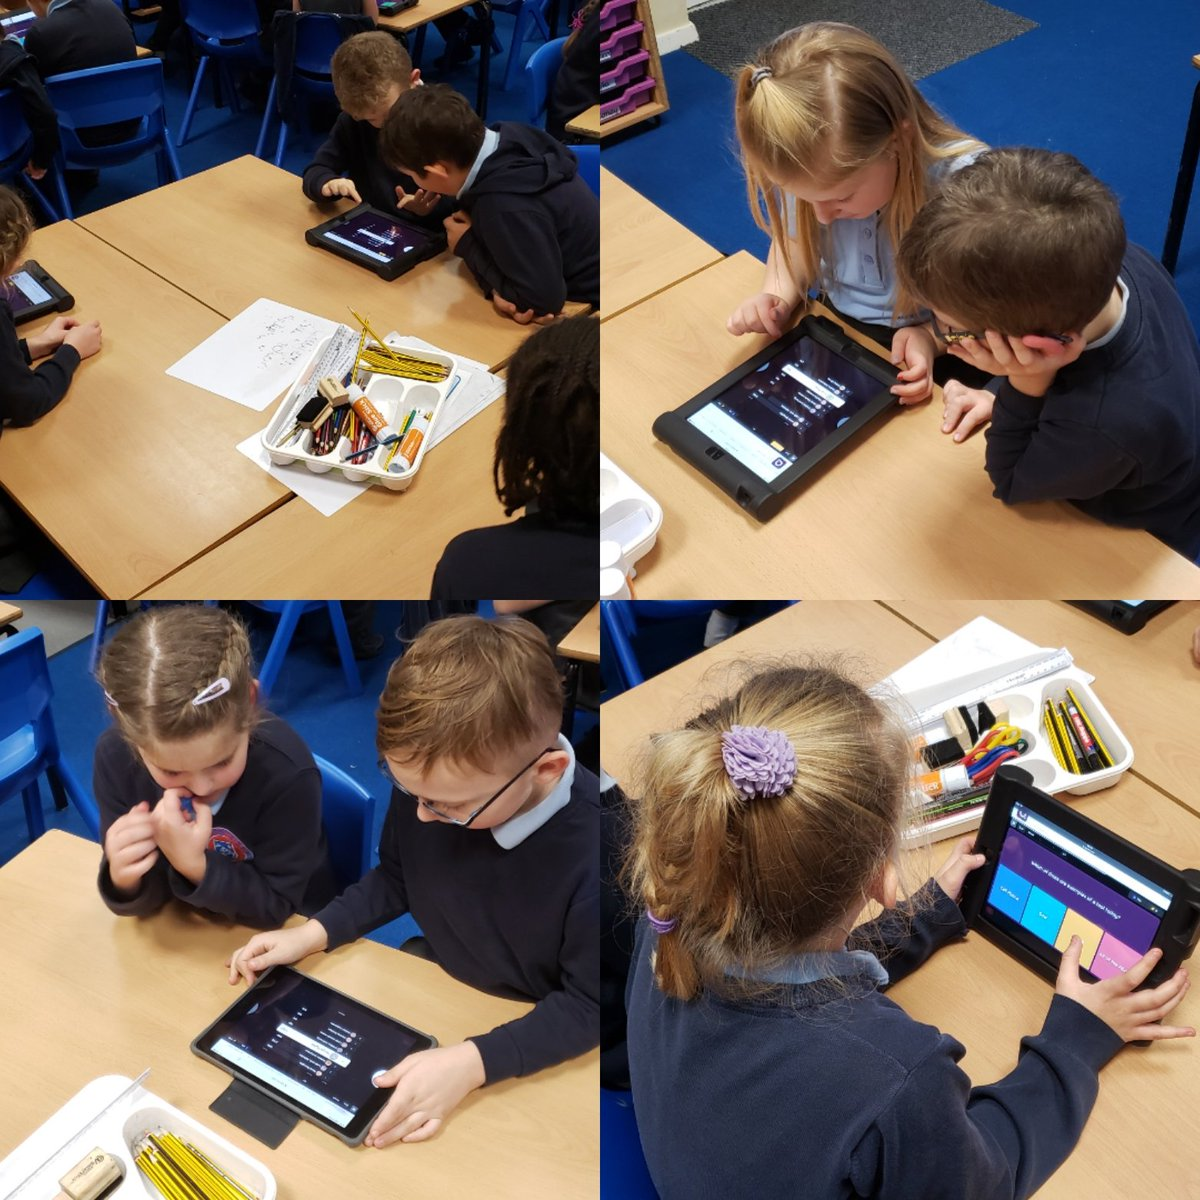 We used #Quizizz to test ourselves on a Ston Age review this afternoon. It was so much fun and we loved the competitive edge with the leaderboard on the board.   #WeLoveQuizizz #InteractiveQuiz   @BostonStNic @fionaboothHT @gavinbHT @InfinityAcadpic.twitter.com/1qxU0QP5Jo